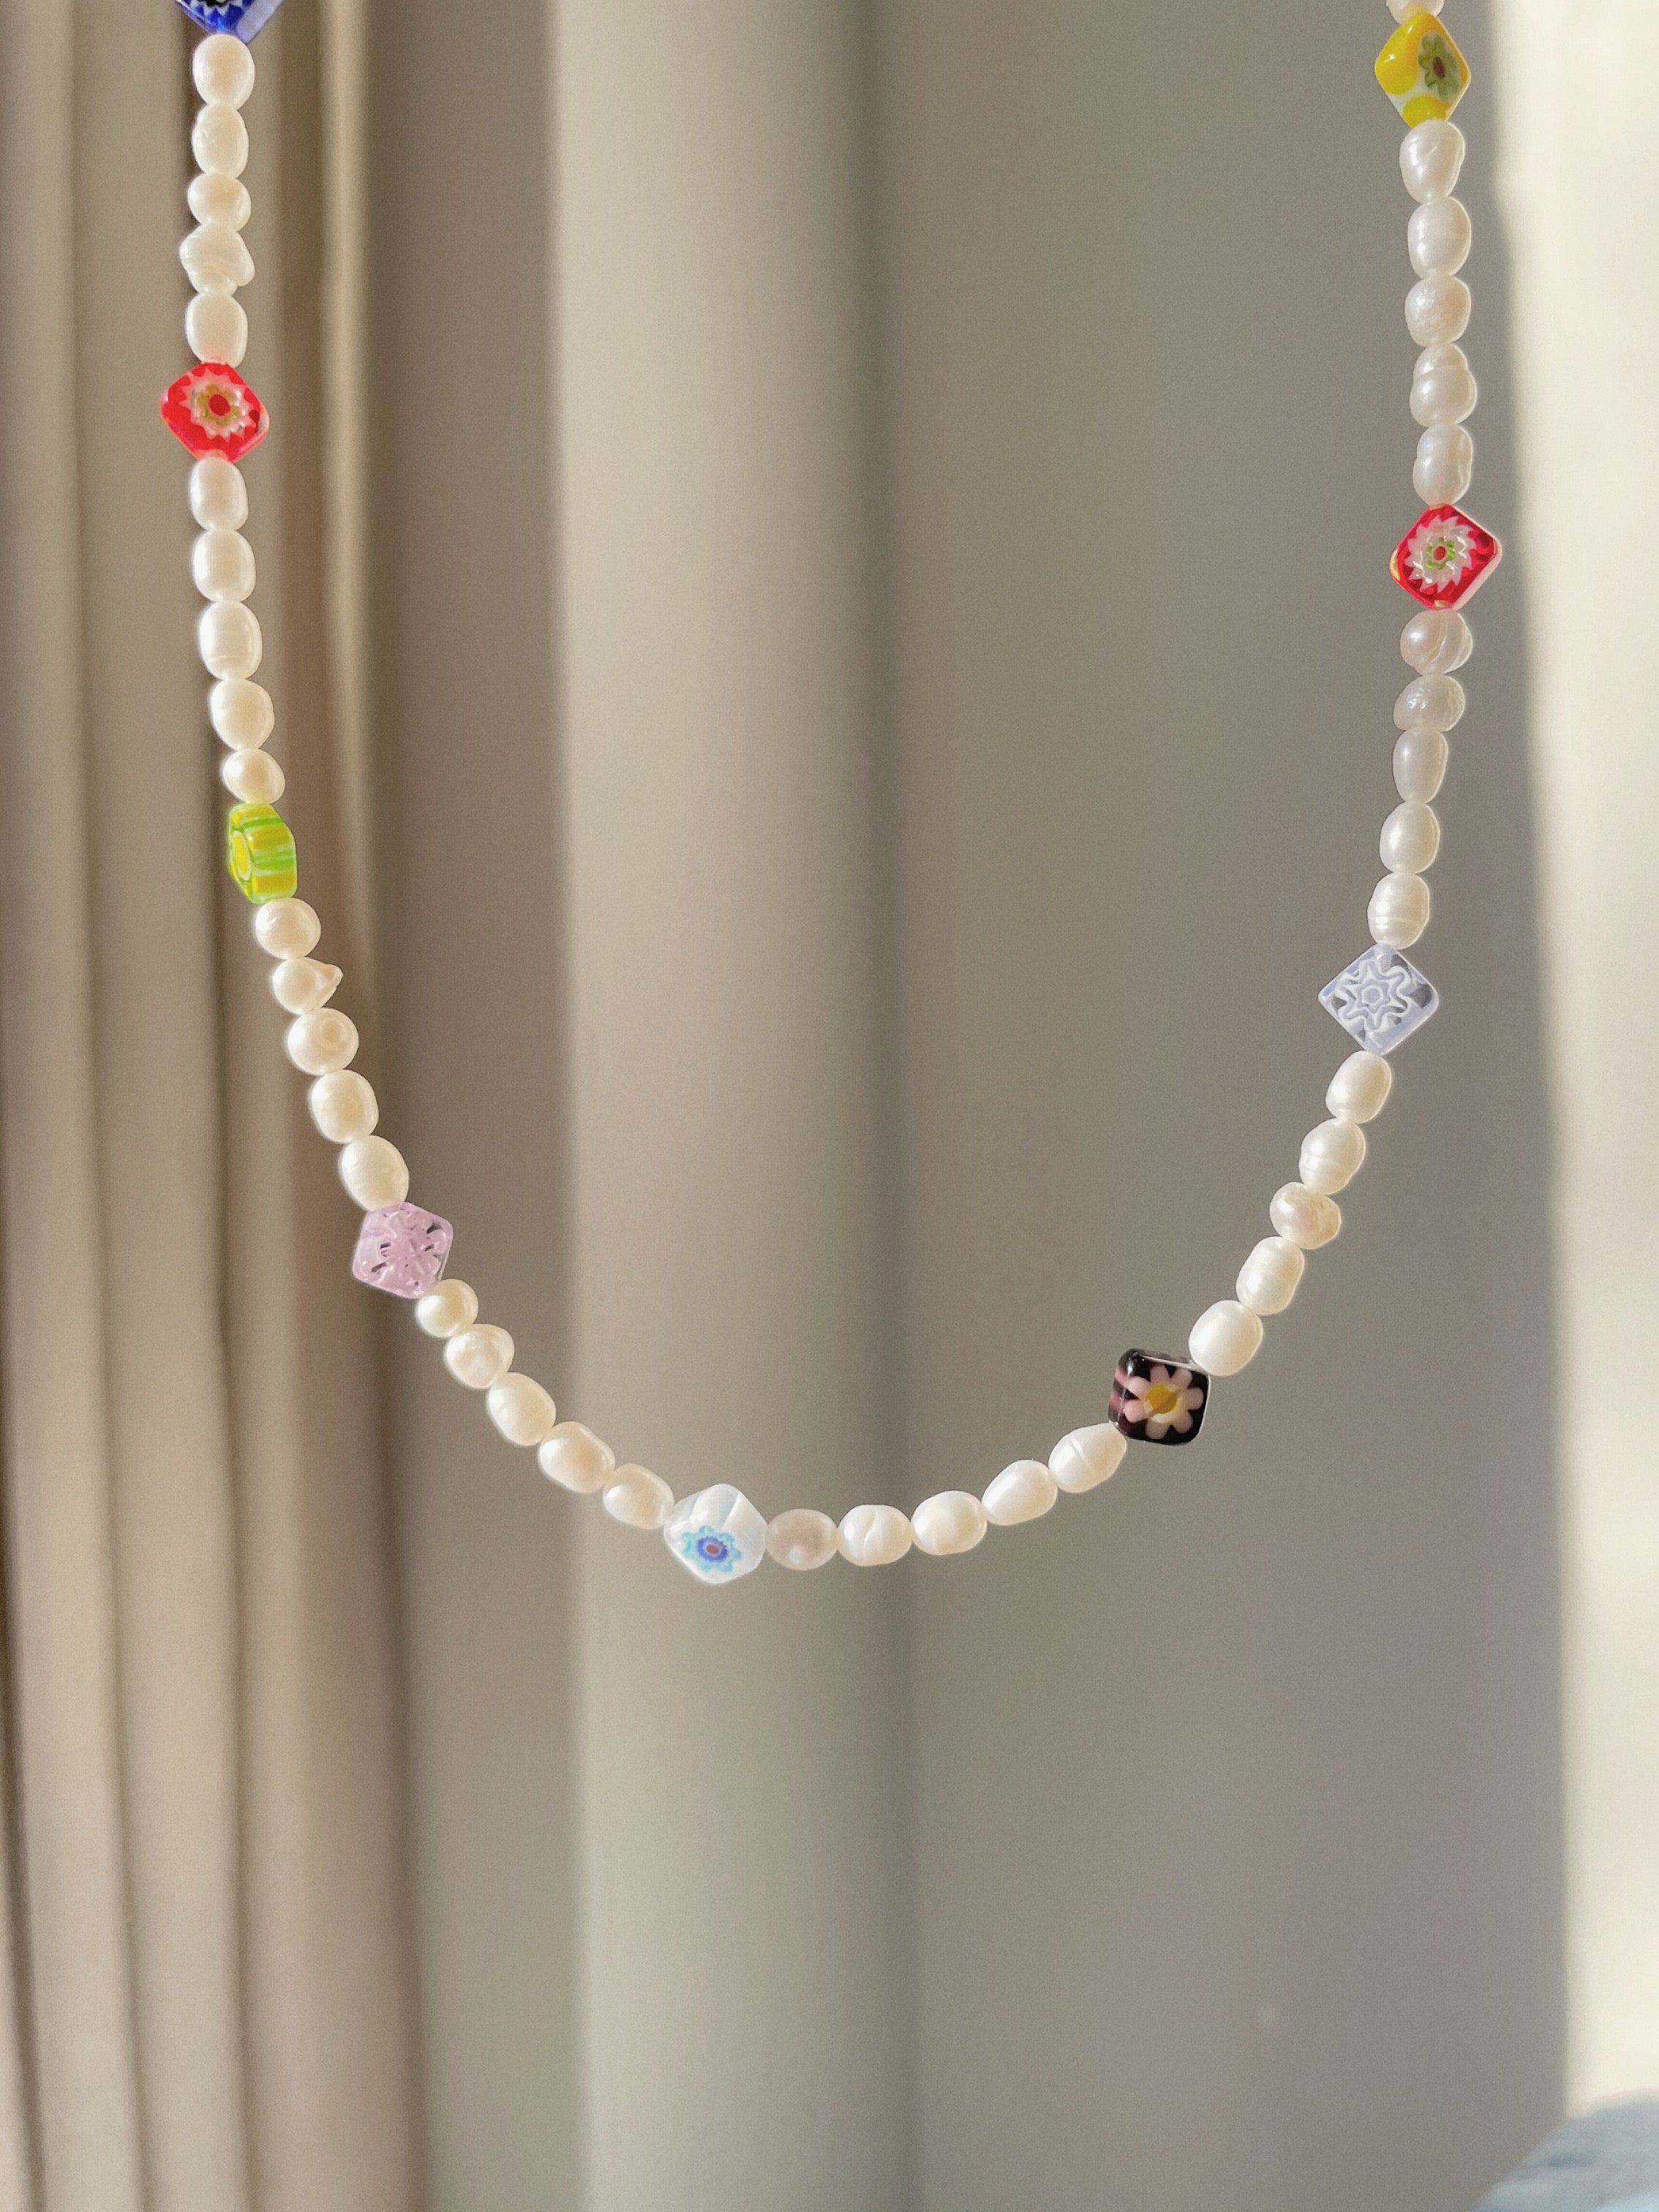 MILLEFIORI necklace - BYVELA jewellery